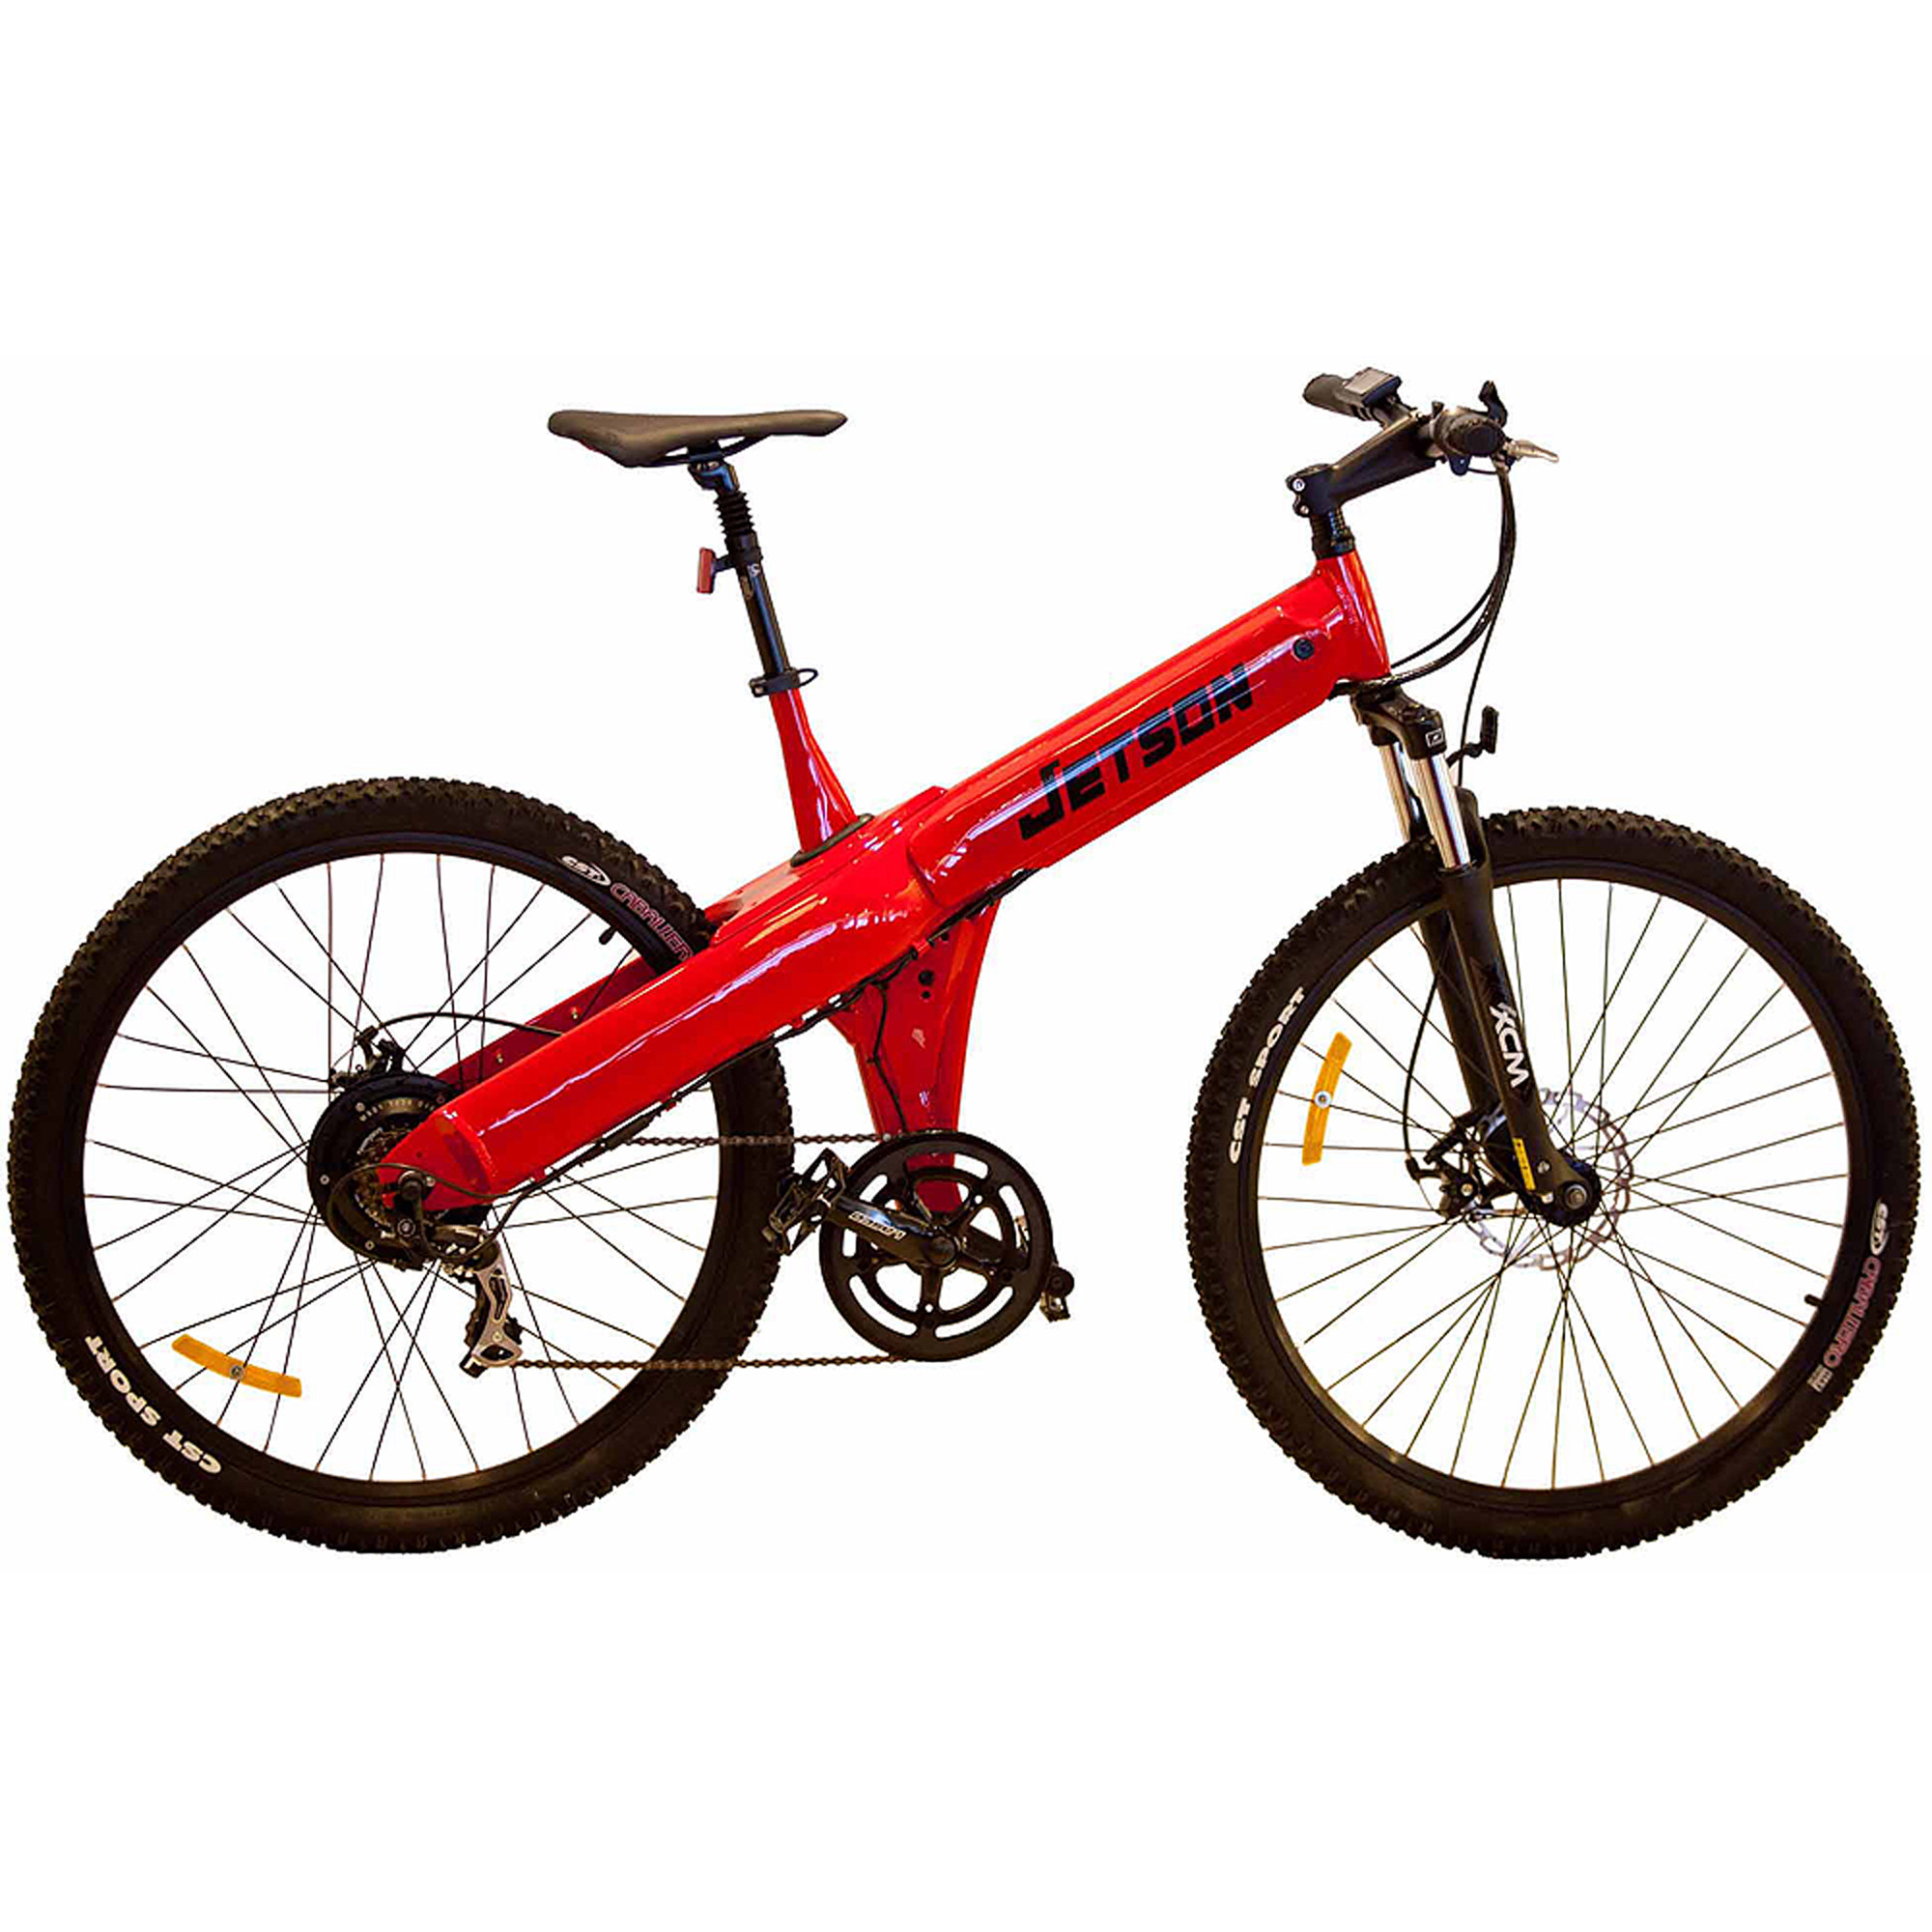 Jetson Electric Mountain Bike with Hidden Battery